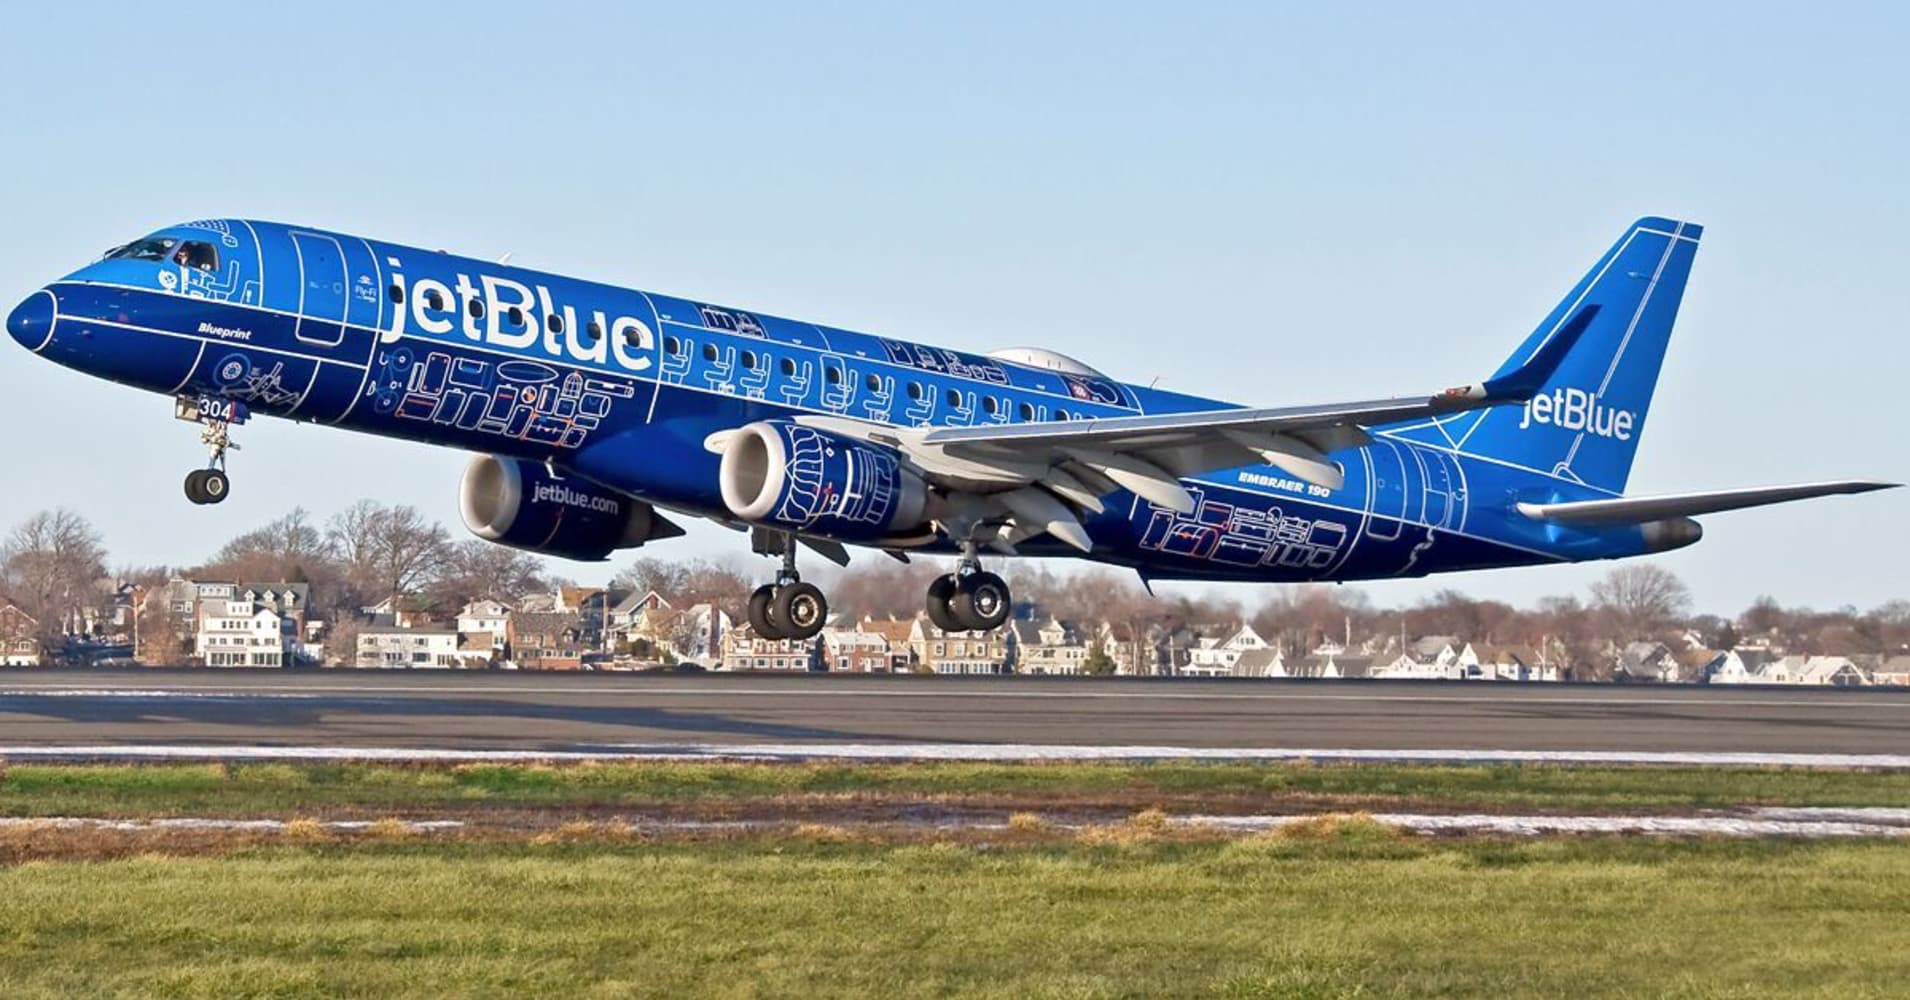 Competition from southwest and jetblue lowers airline ticket prices sciox Choice Image